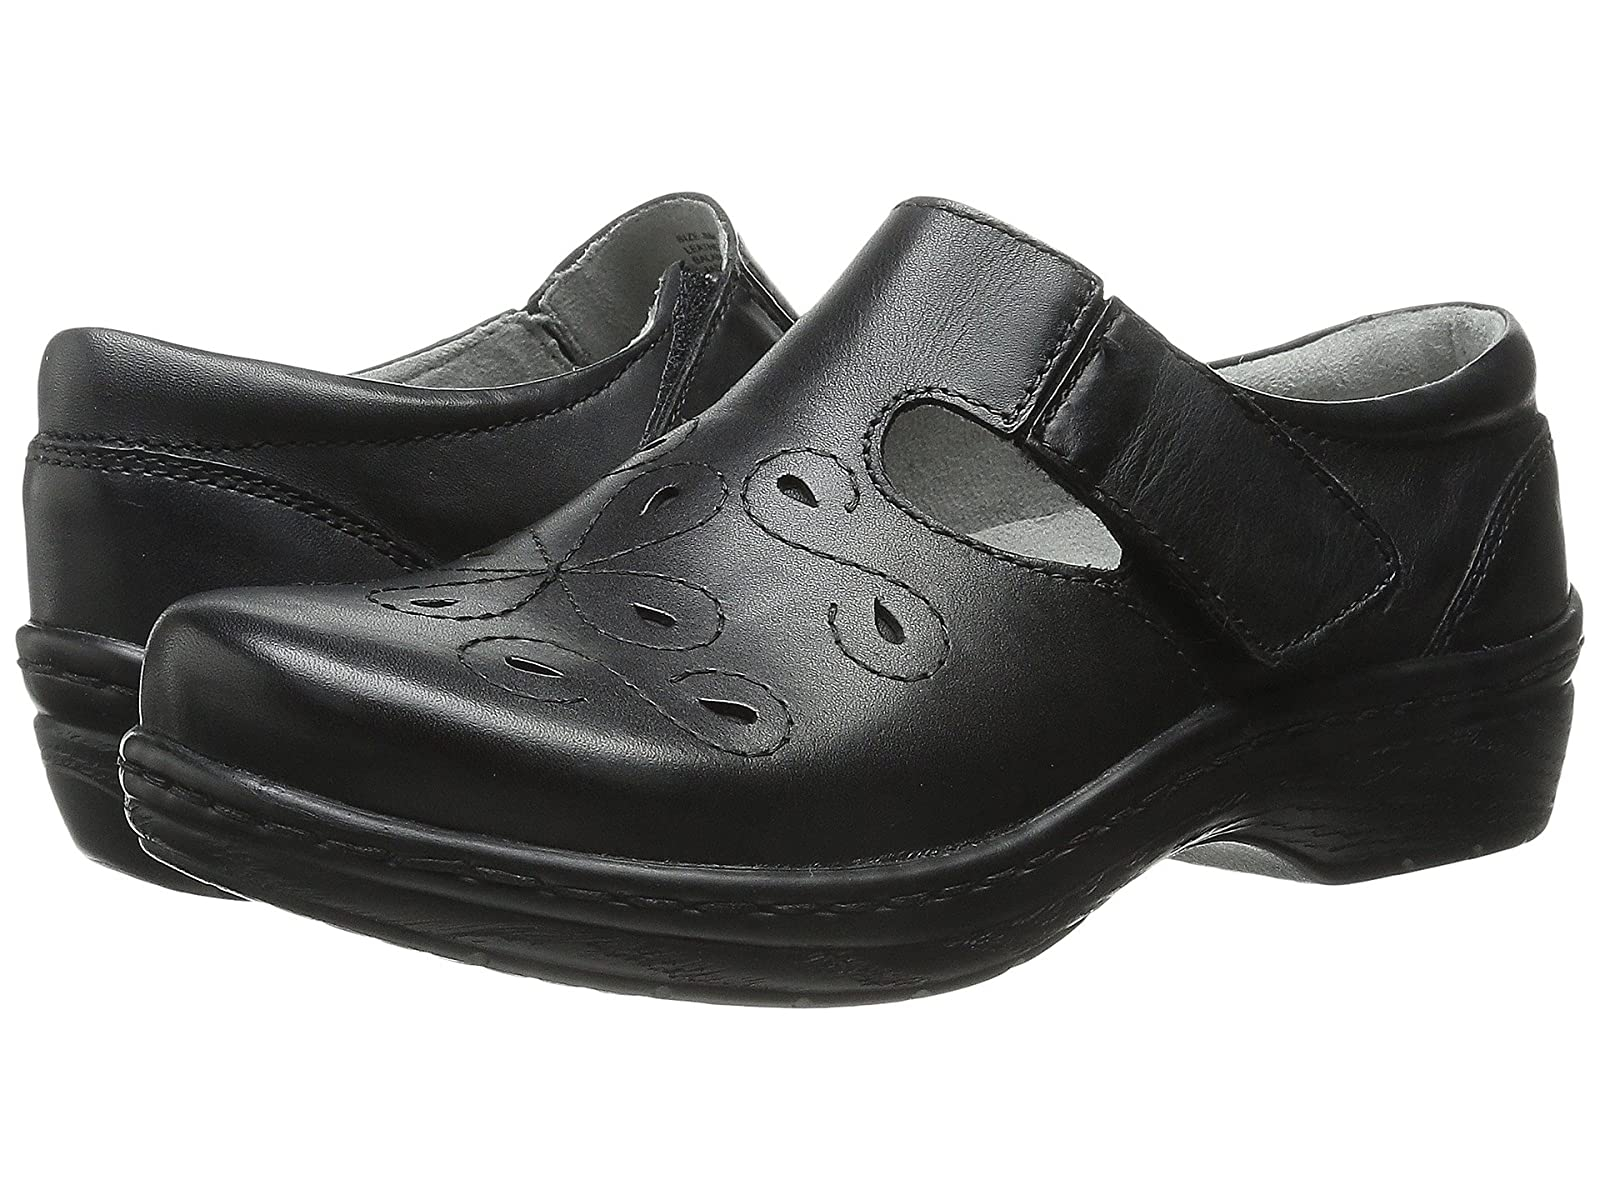 Klogs Footwear BrisbaneCheap and distinctive eye-catching shoes